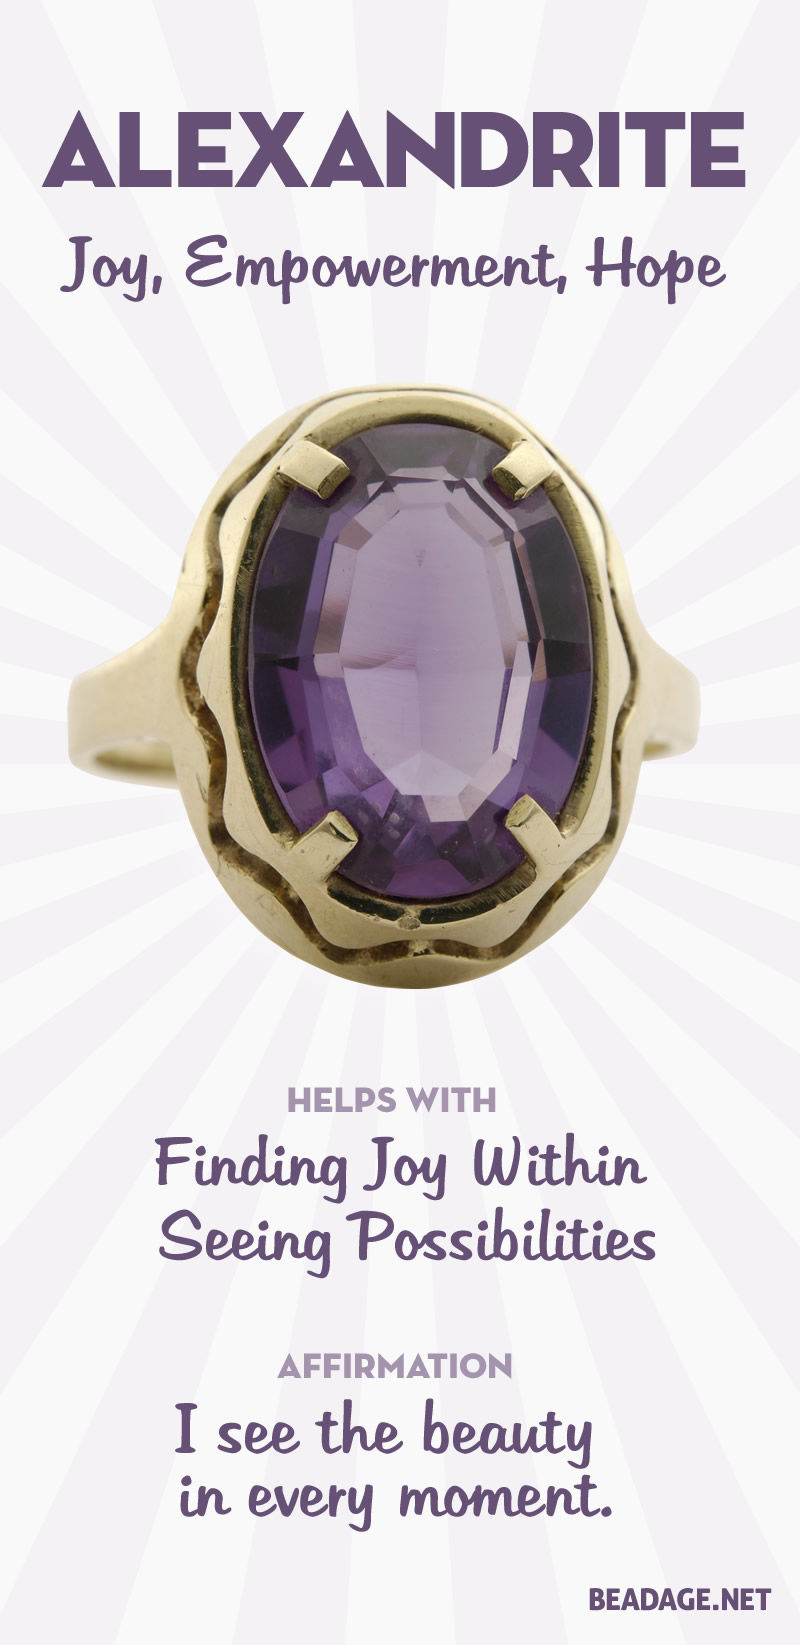 Rather than just bring you joy, Alexandrite helps you develop your own source of joy within yourself. It facilitates an awareness of the beauty of every moment, and your power to choose and make the most of your life. It provides hope by means of awareness of the possibilities that are always available to you, no matter your circumstances. Learn more about Alexandrite meaning + healing properties, benefits & more.